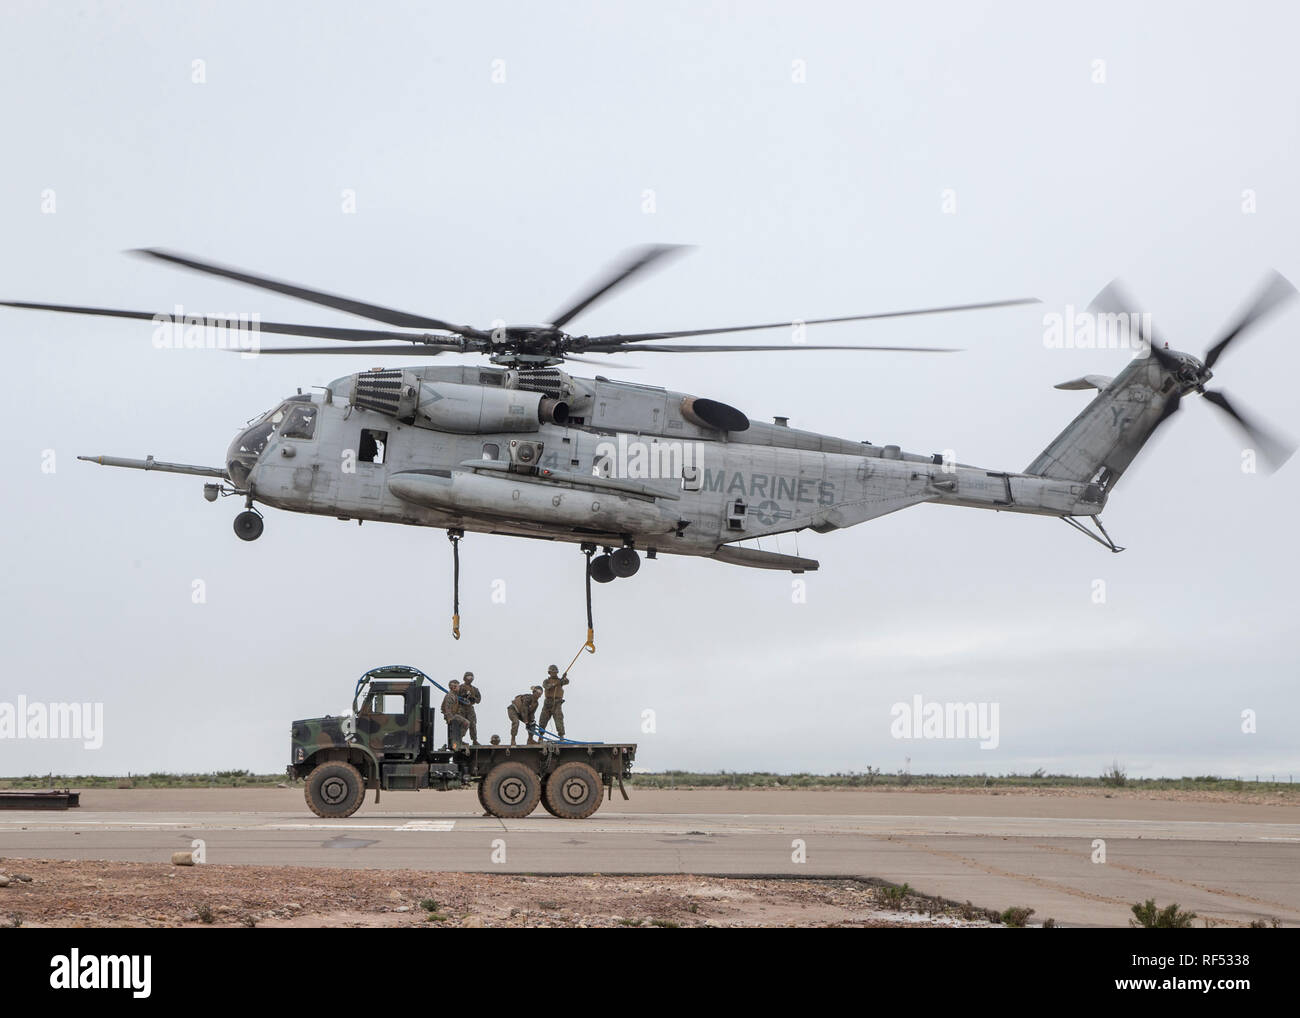 MARINE CORPS AIR STATION MIRAMAR, Calif.- U.S. Marines with 1st Transportation Support Battalion (TSB), 1st Marine Logistics Group (MLG), hook a Medium Tactical Vehicle Replacement (MTVR) to a CH-53E Super Stallion with Marine Heavy Helicopter Squadron (HMH) 462, Marine Aircraft Group (MAG) 16, 3rd Marine Aircraft Wing (MAW) at Marine Corps Air Station Miramar, Calif., Jan. 16. Marines from HMH-462 and 1st MLG conducted an external lift of an MTVR to improve their support capabilities and exercise the aircraft's limit of 36,000 pounds. (U.S. Marine Corps photo by Lance Cpl. Clare J. McIntire) Stock Photo